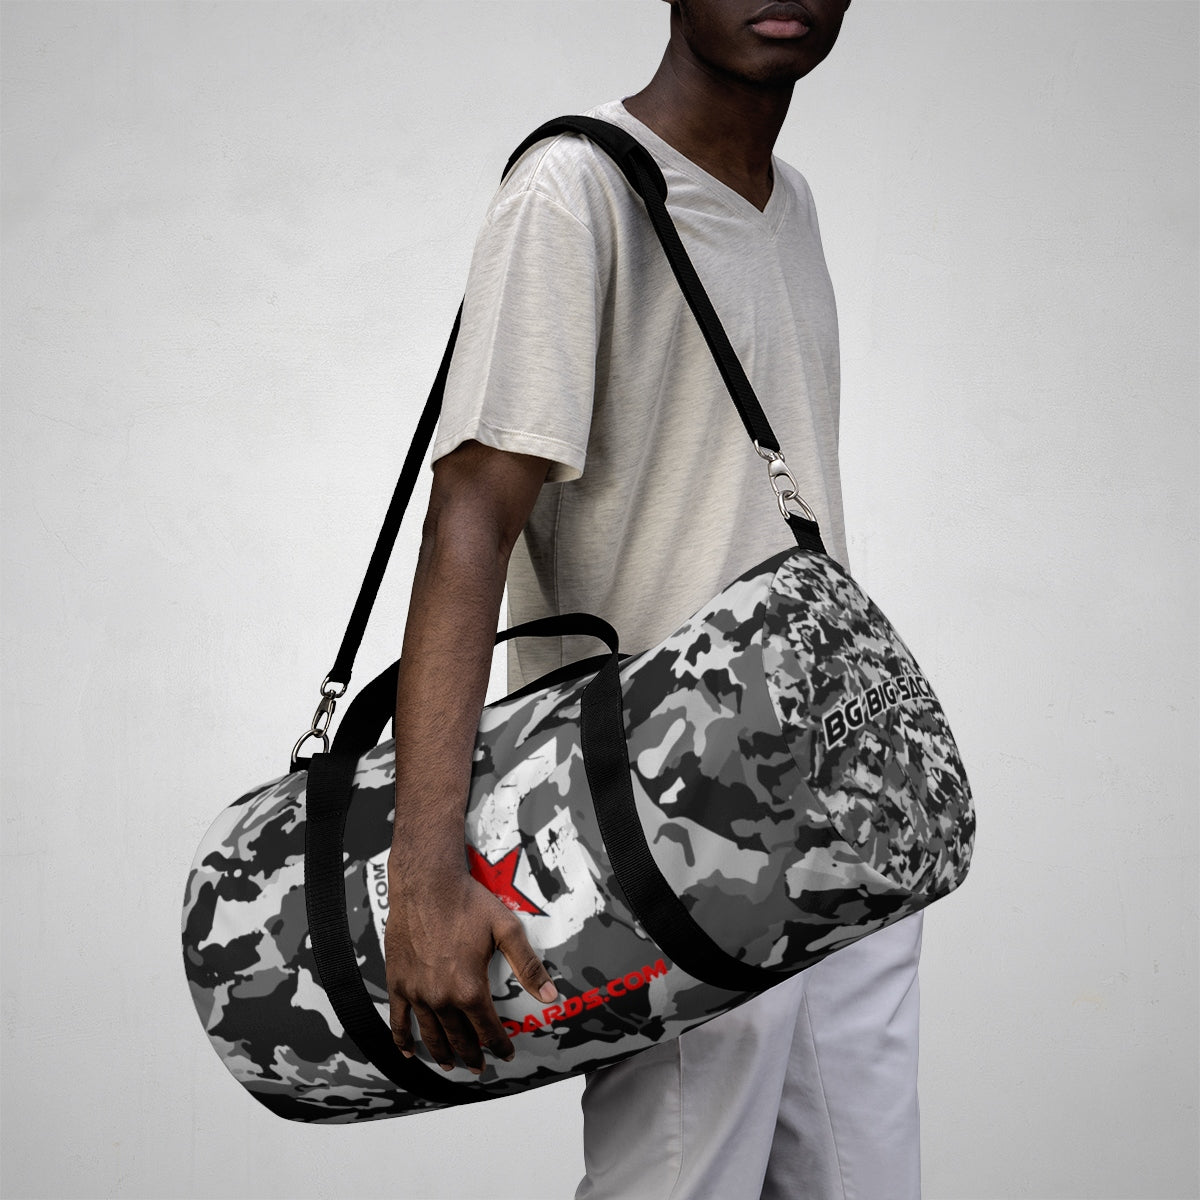 BG BIG SACK CAMO DUFFLE BAG